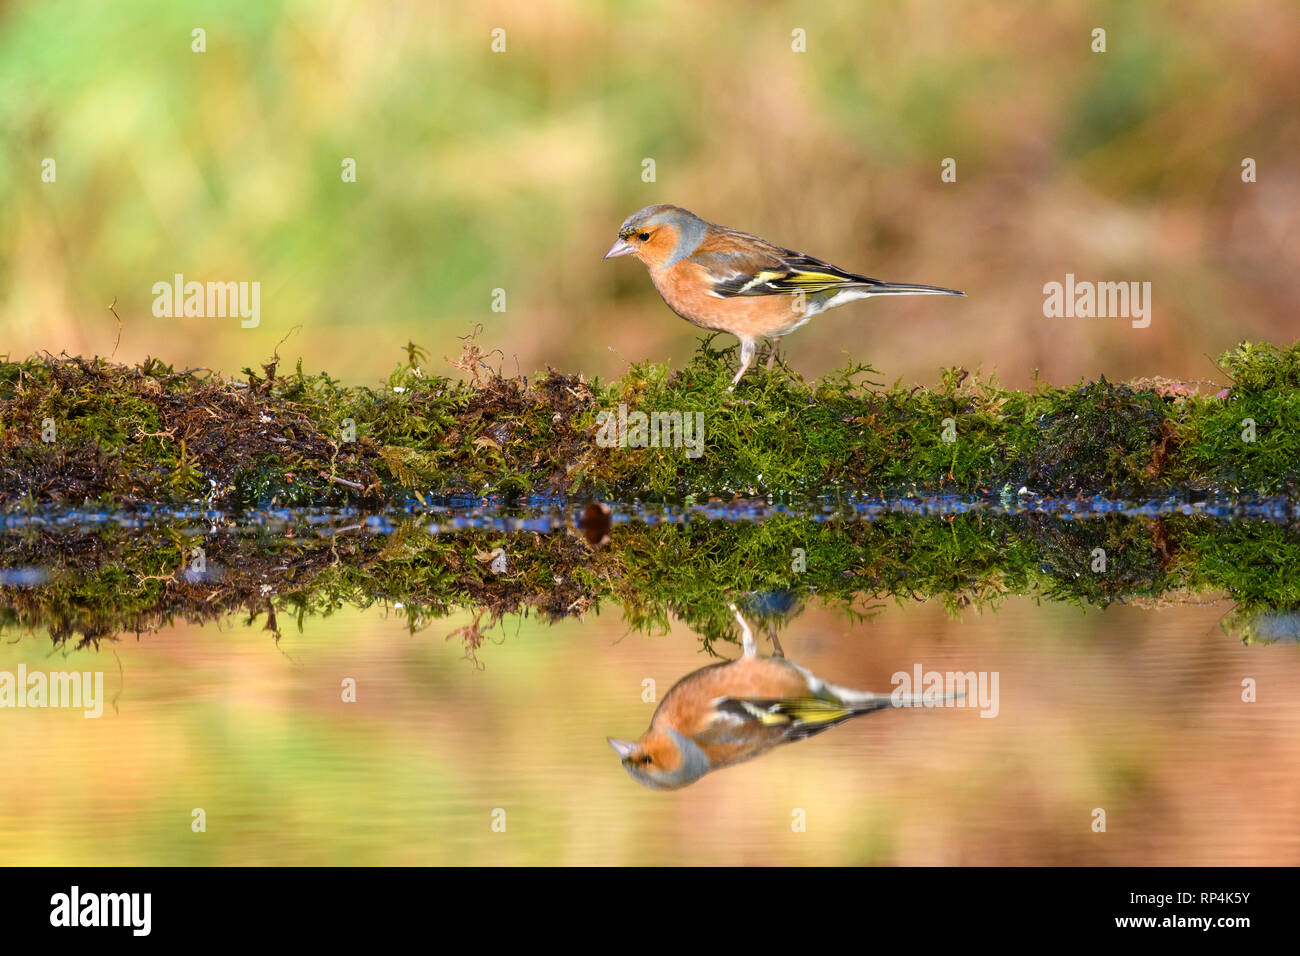 Male Chaffinch, Fringilla coelebs, Dumfries & Galloway, Scotland - Stock Image